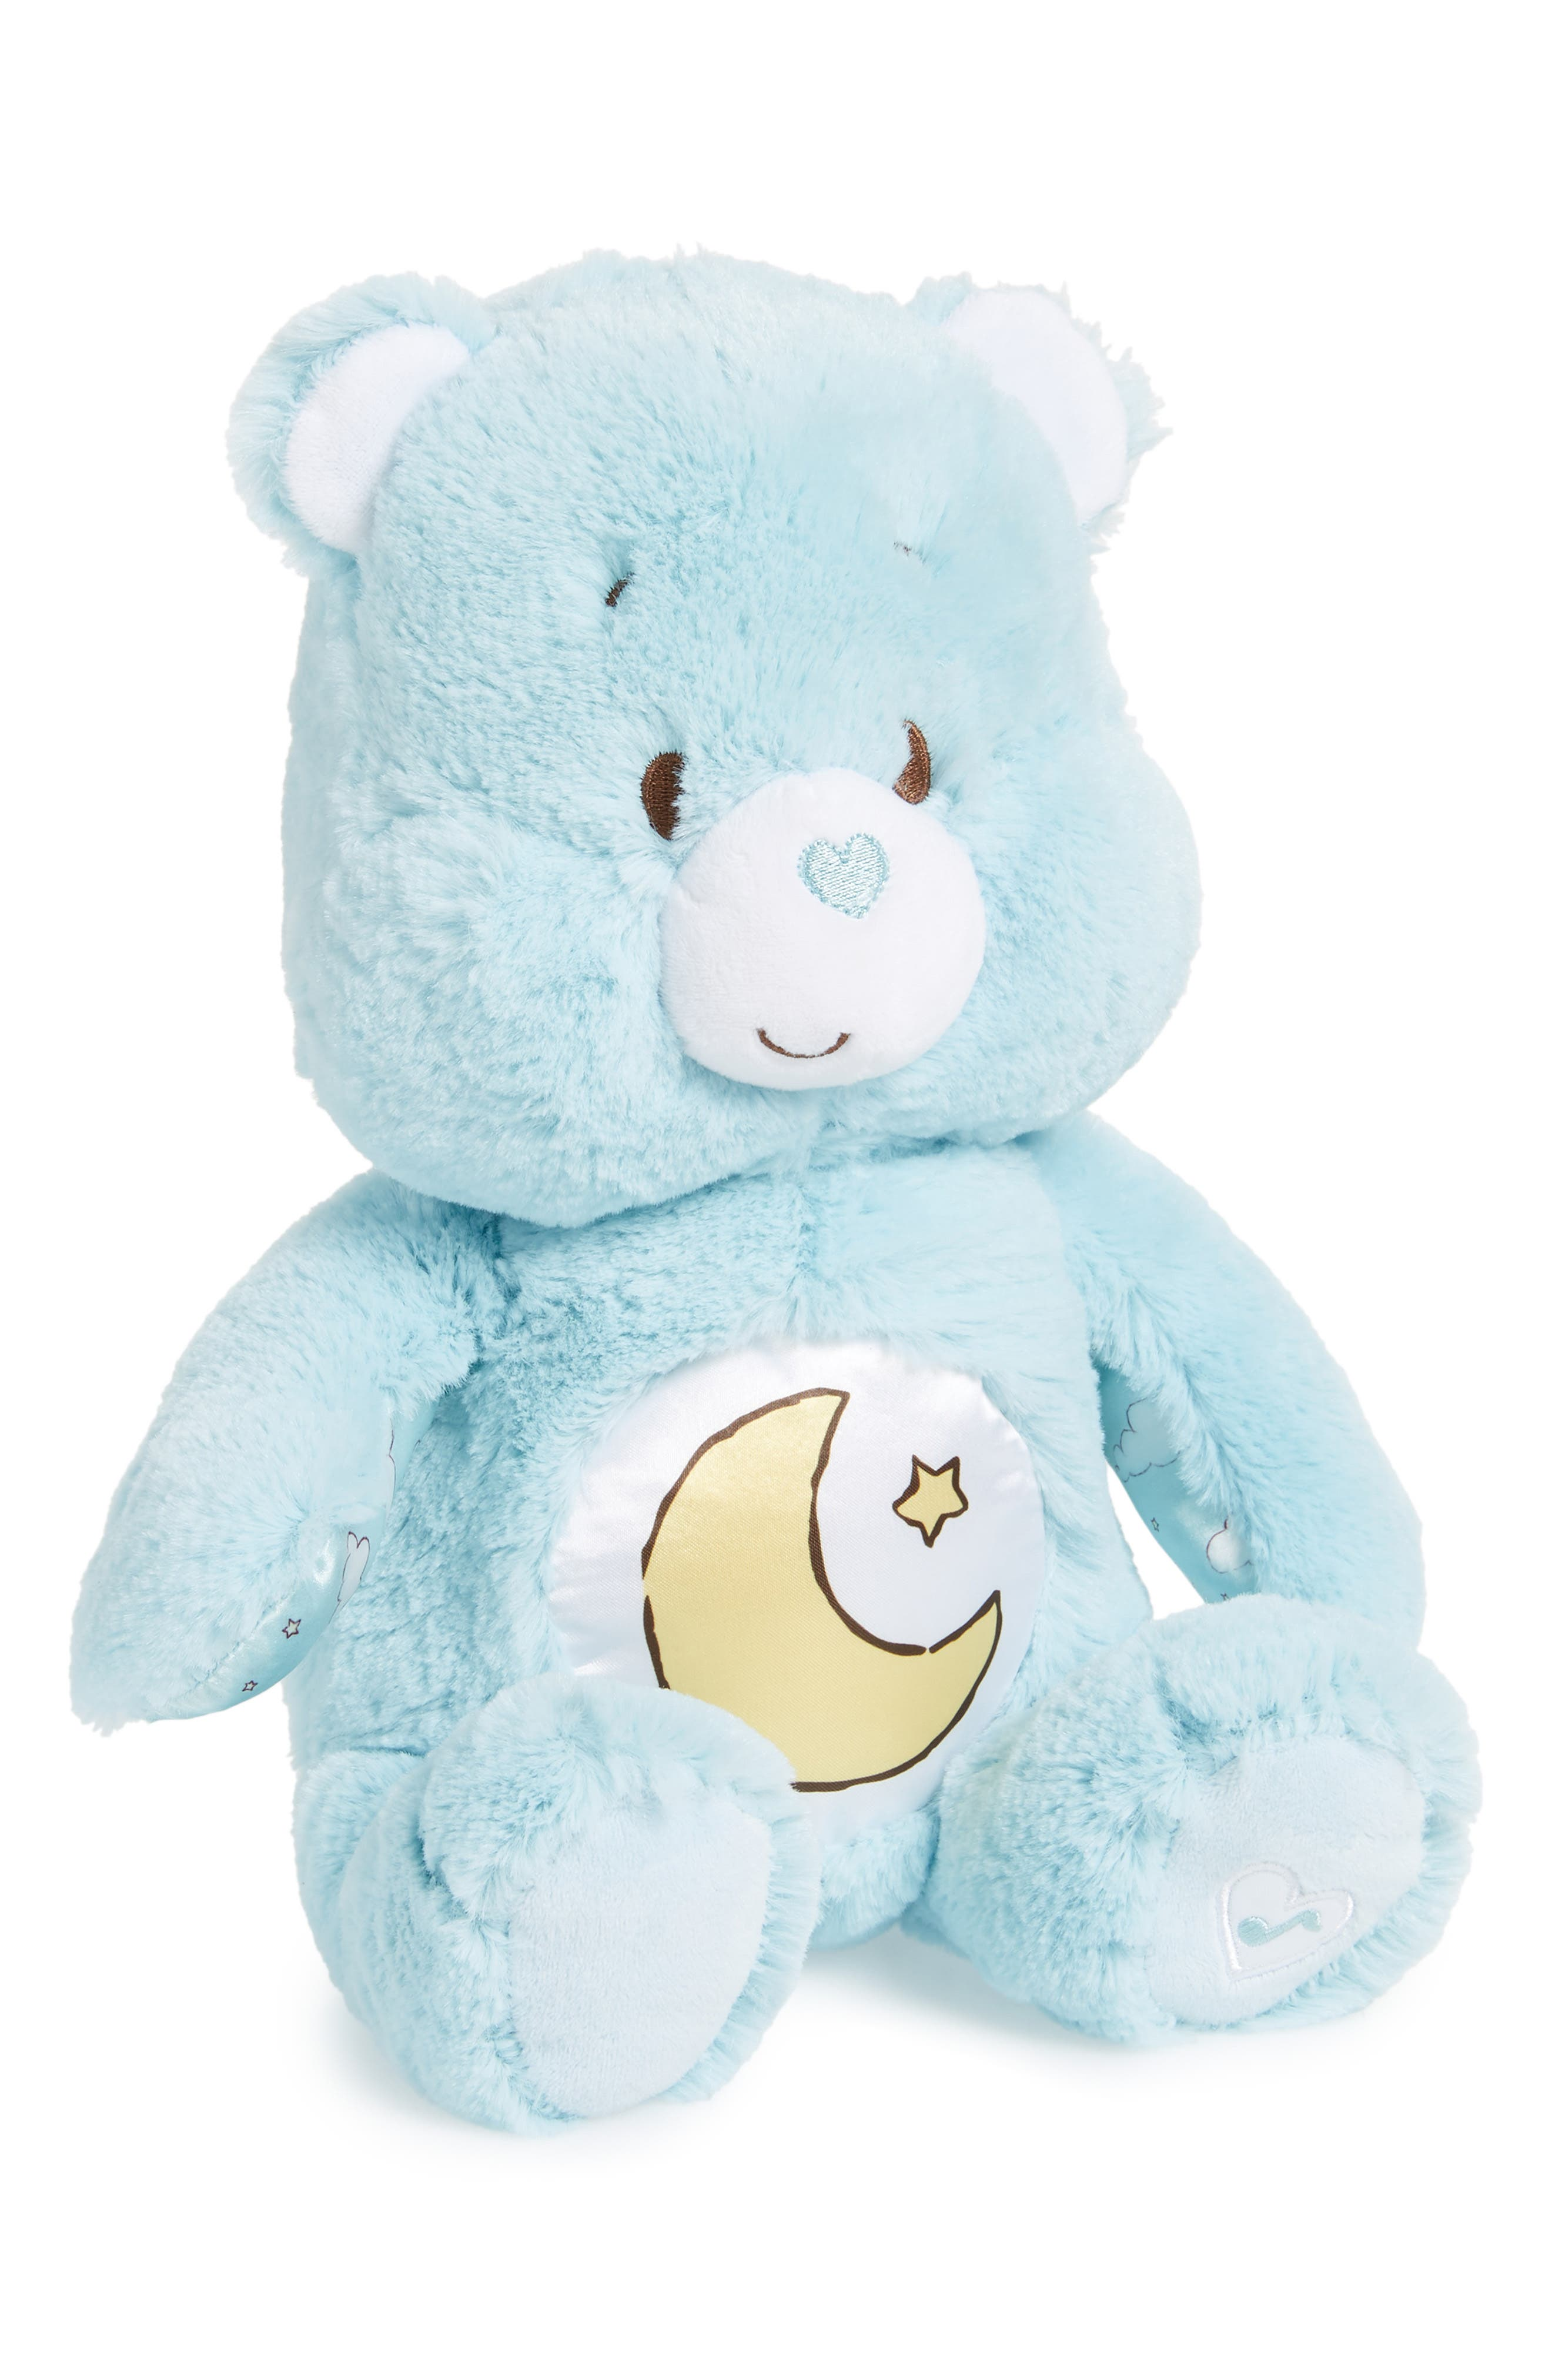 KIDS PREFERRED,                             Care Bears Soother Bear Light-Up Plush Toy,                             Main thumbnail 1, color,                             400